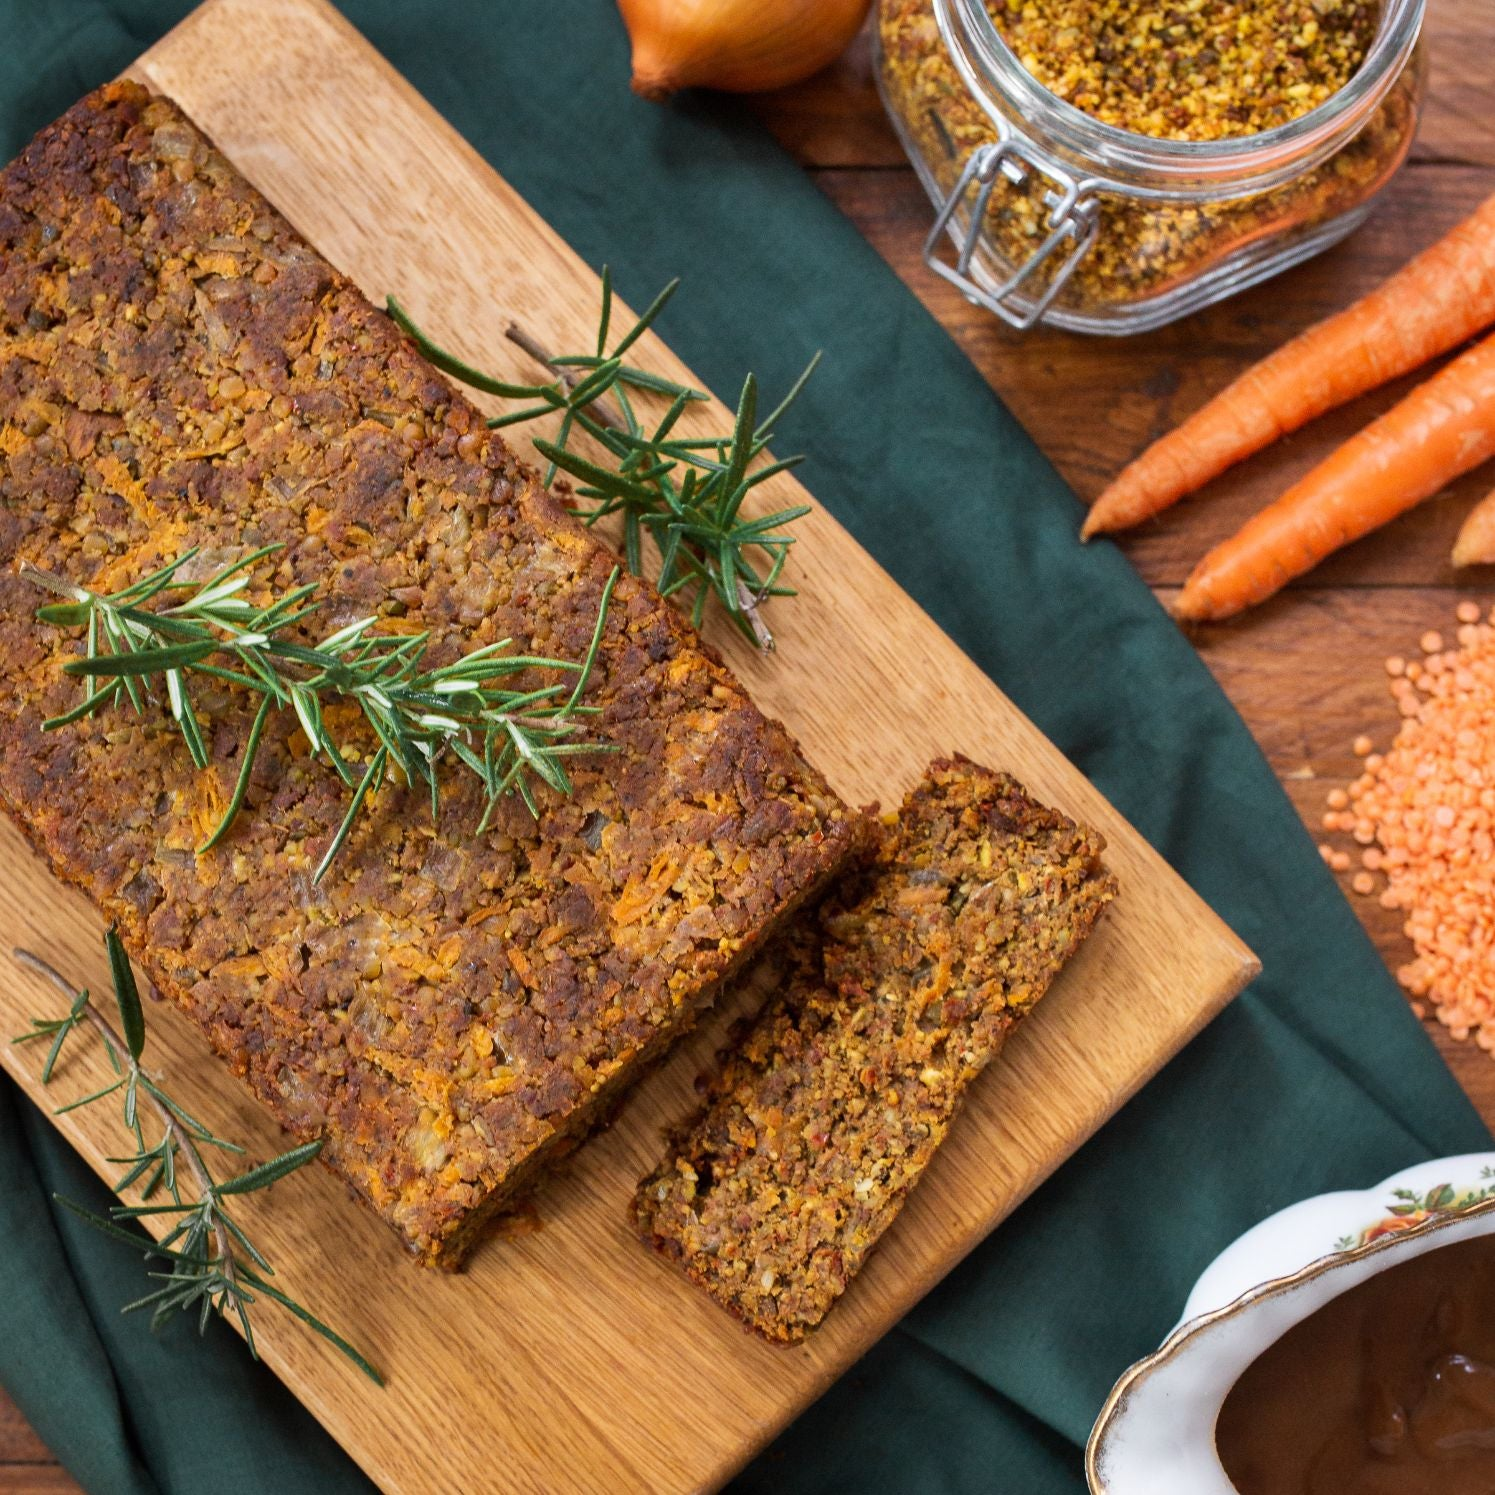 Nut Roast Kit for 4-5 People